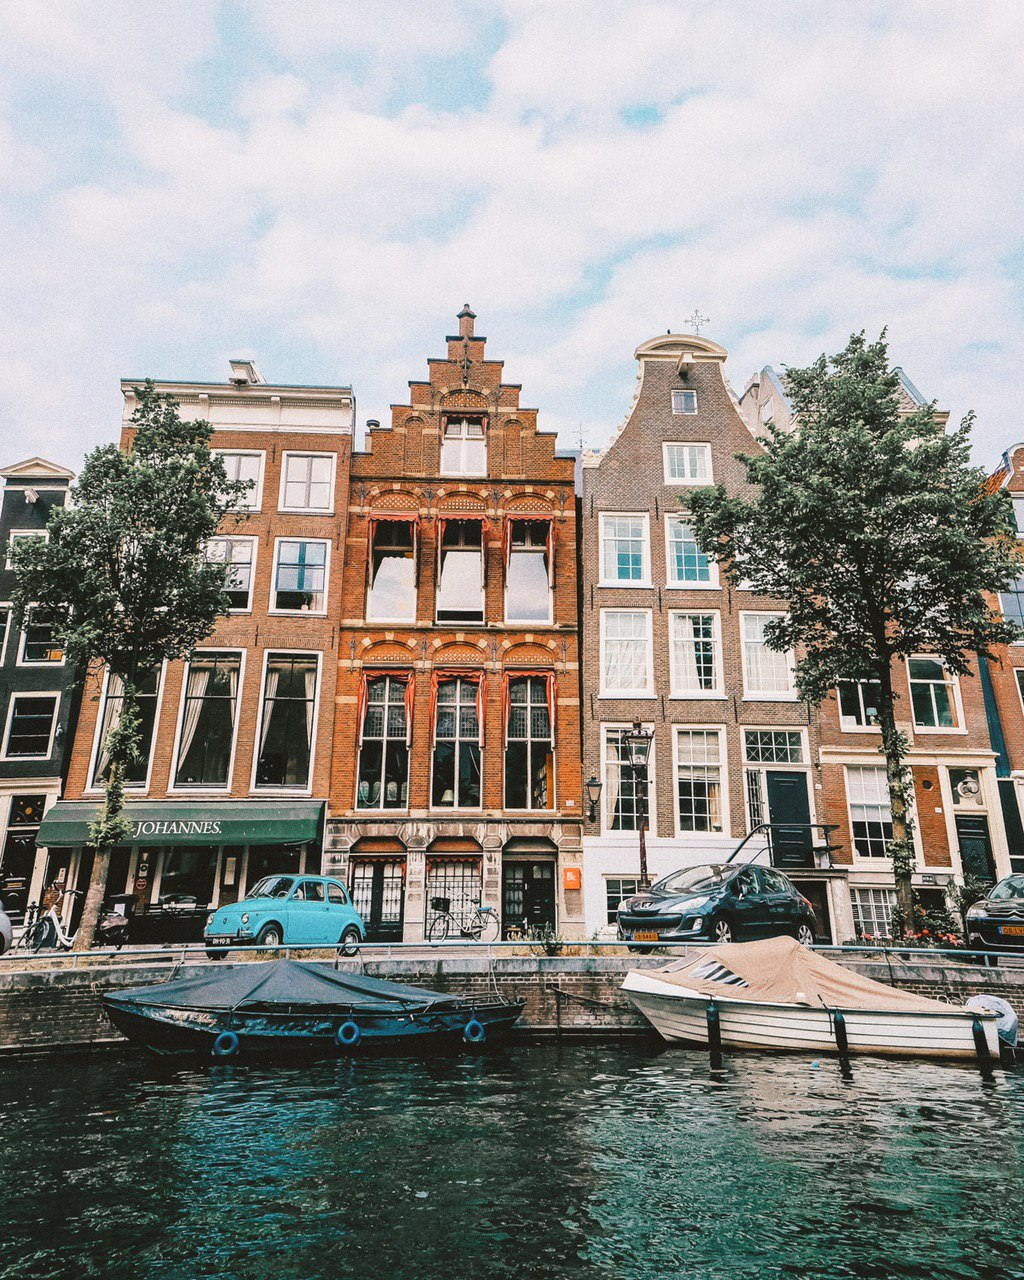 Virtual Tour: View from the canal of Amsterdam, The Netherlands